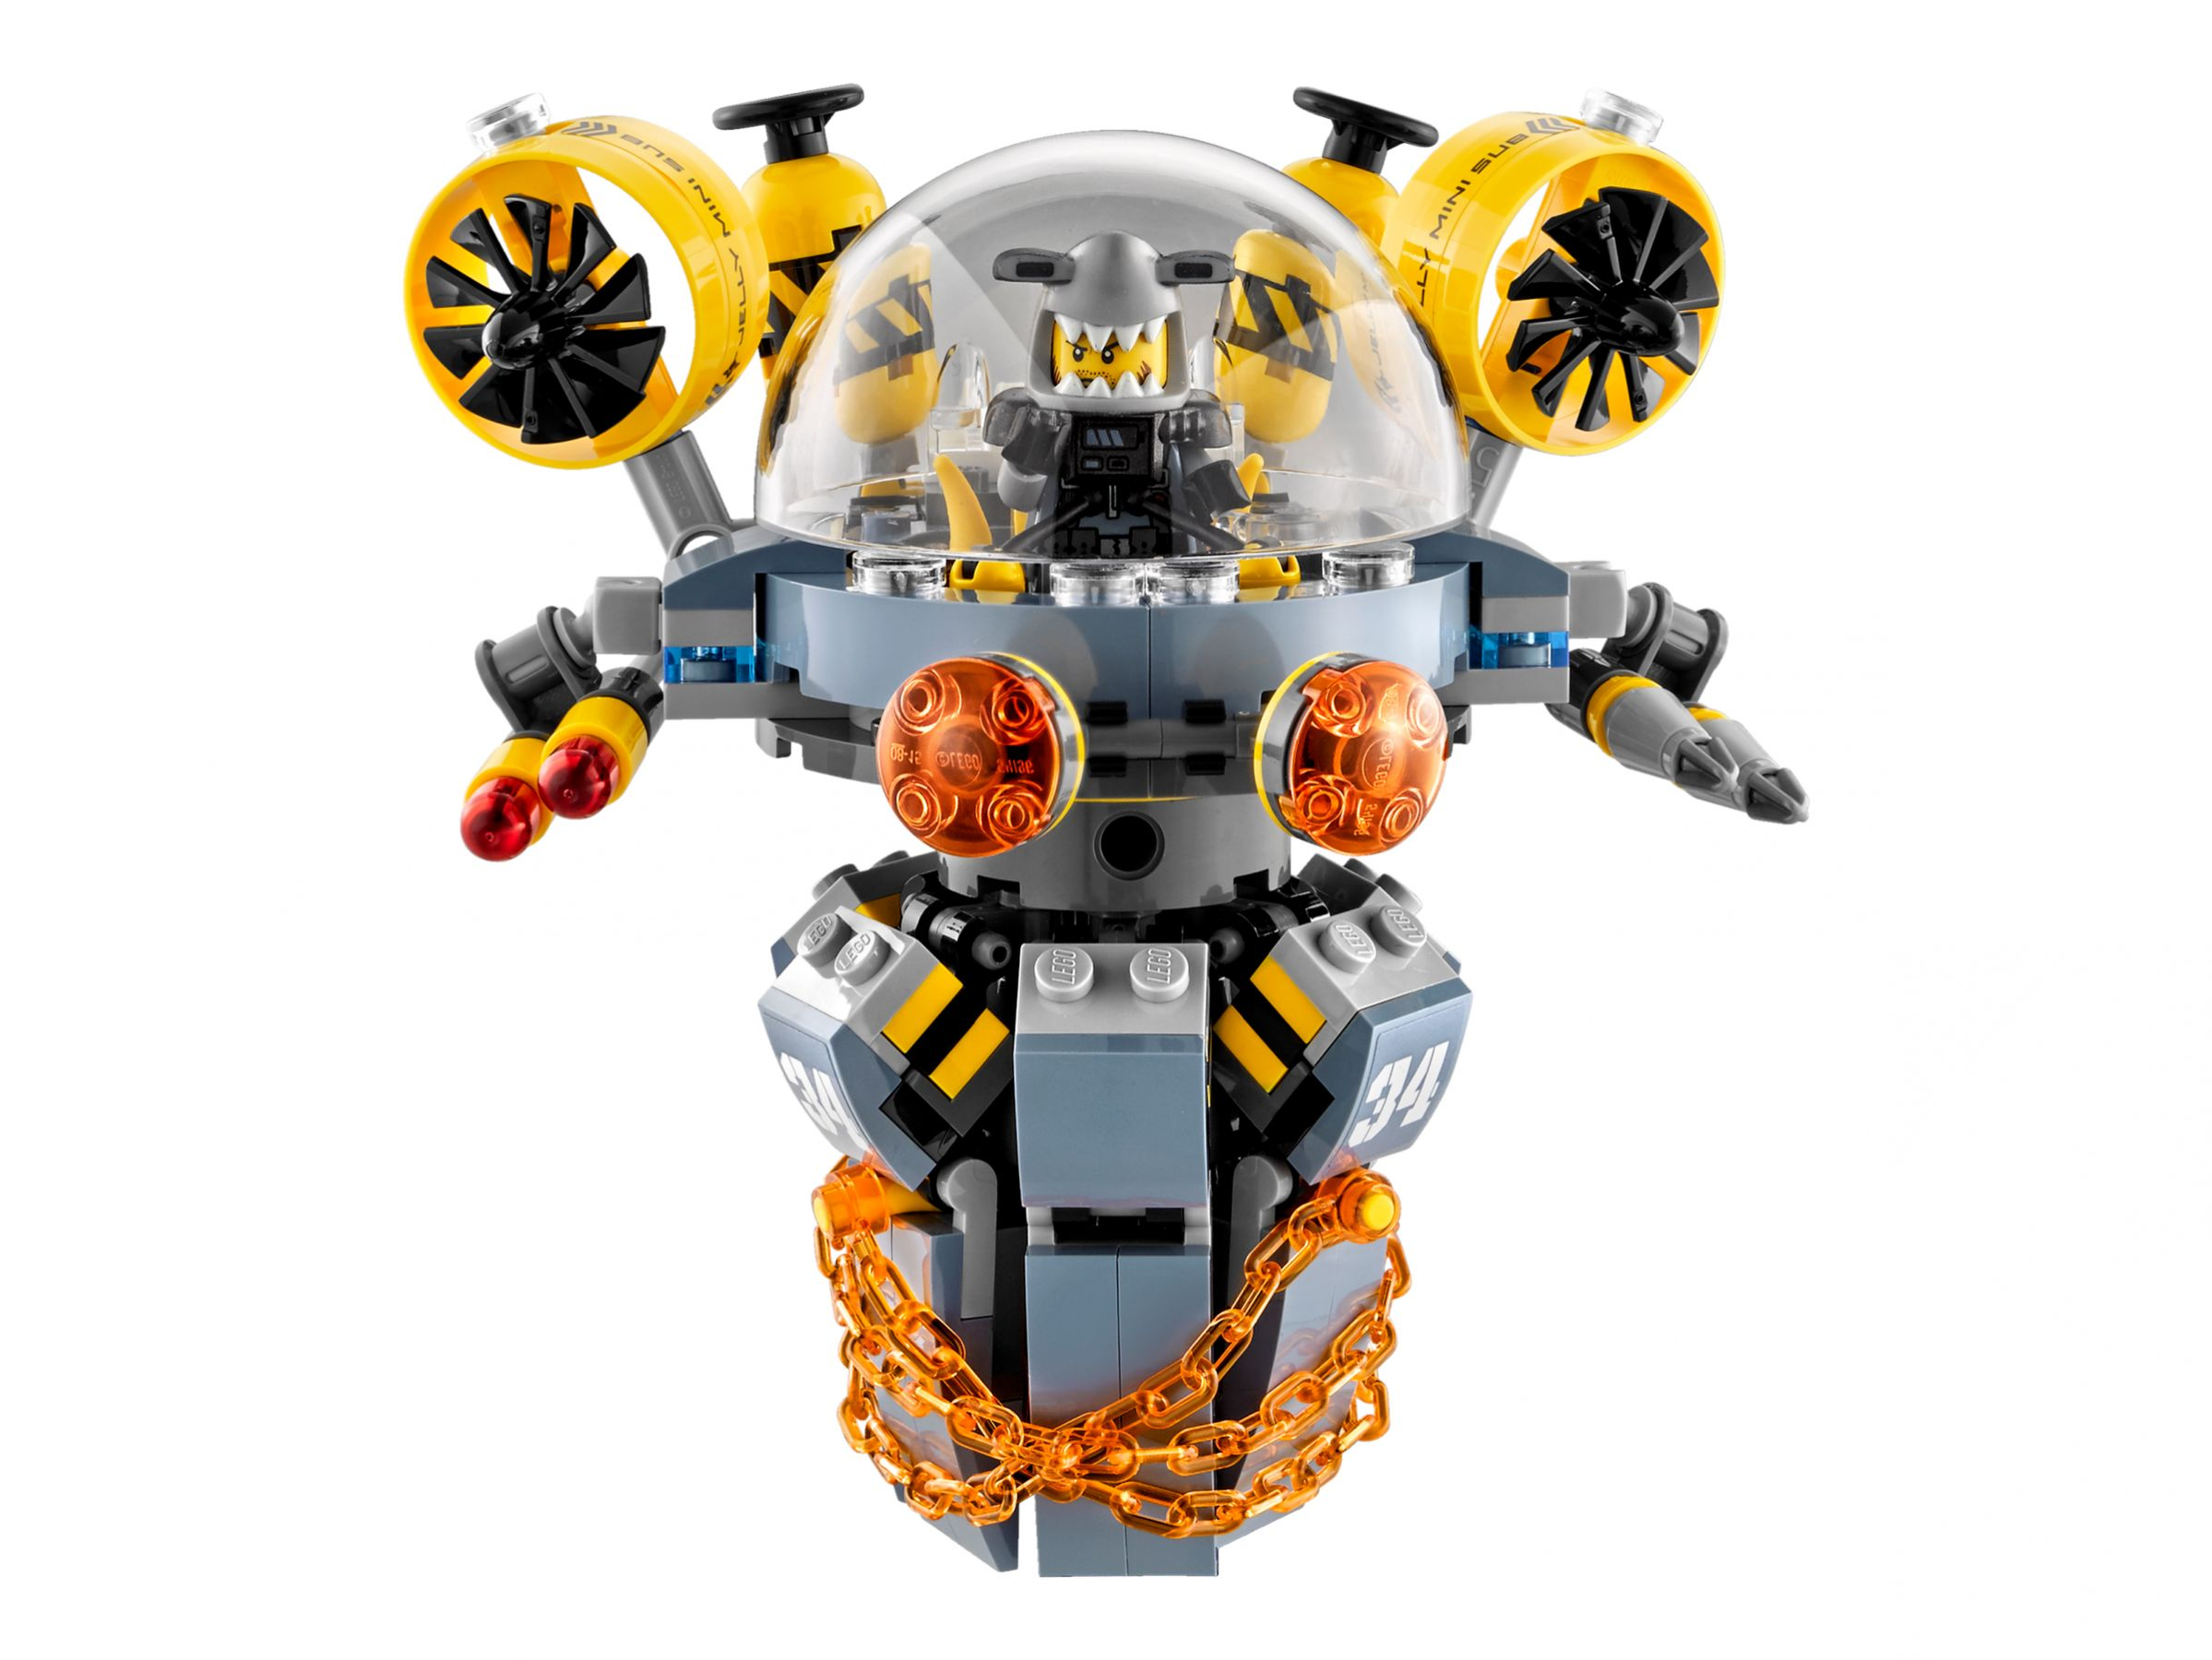 LEGO The LEGO Ninjago Movie 70610 Turbo Qualle LEGO_70610_alt3.jpg